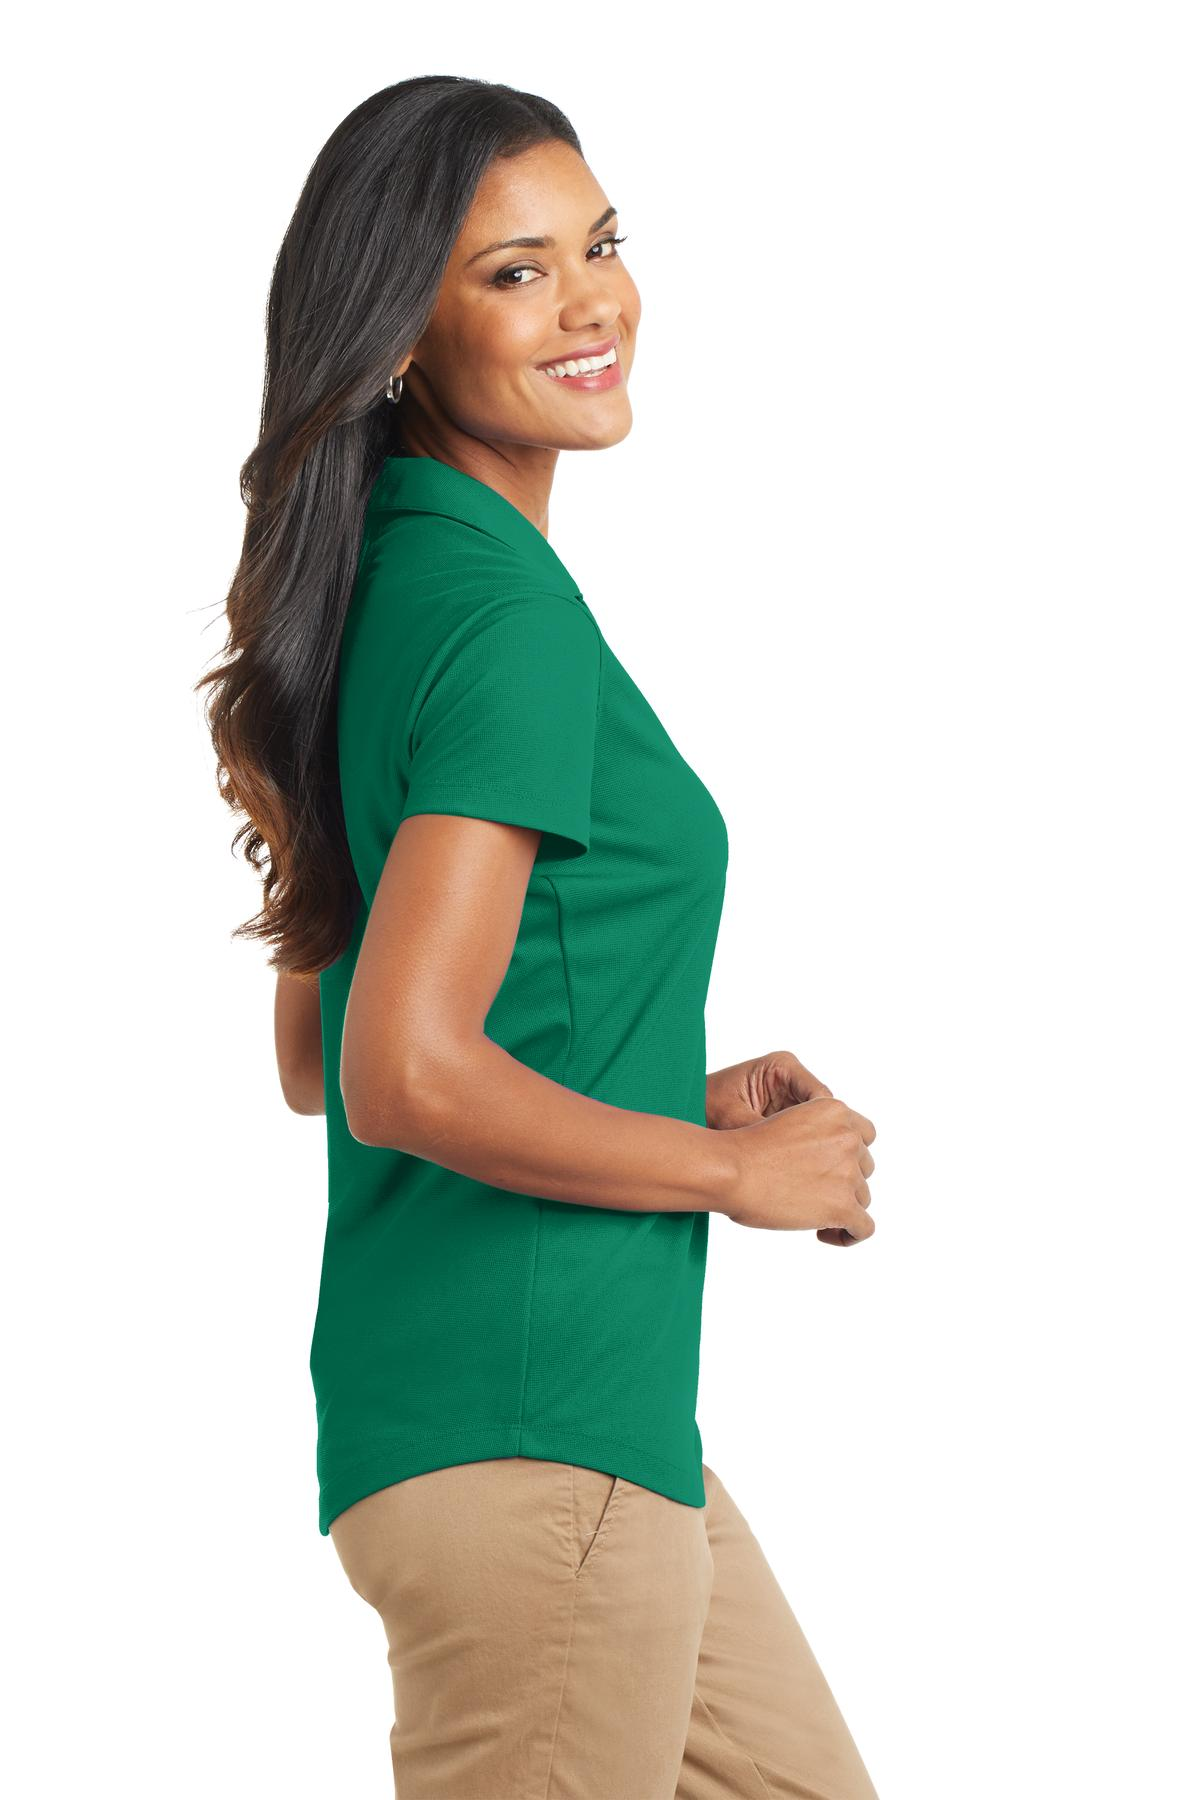 51d2f492 Port Authority - Port Authority Women's Durable Dry Zone Grid Polo Shirt -  Walmart.com